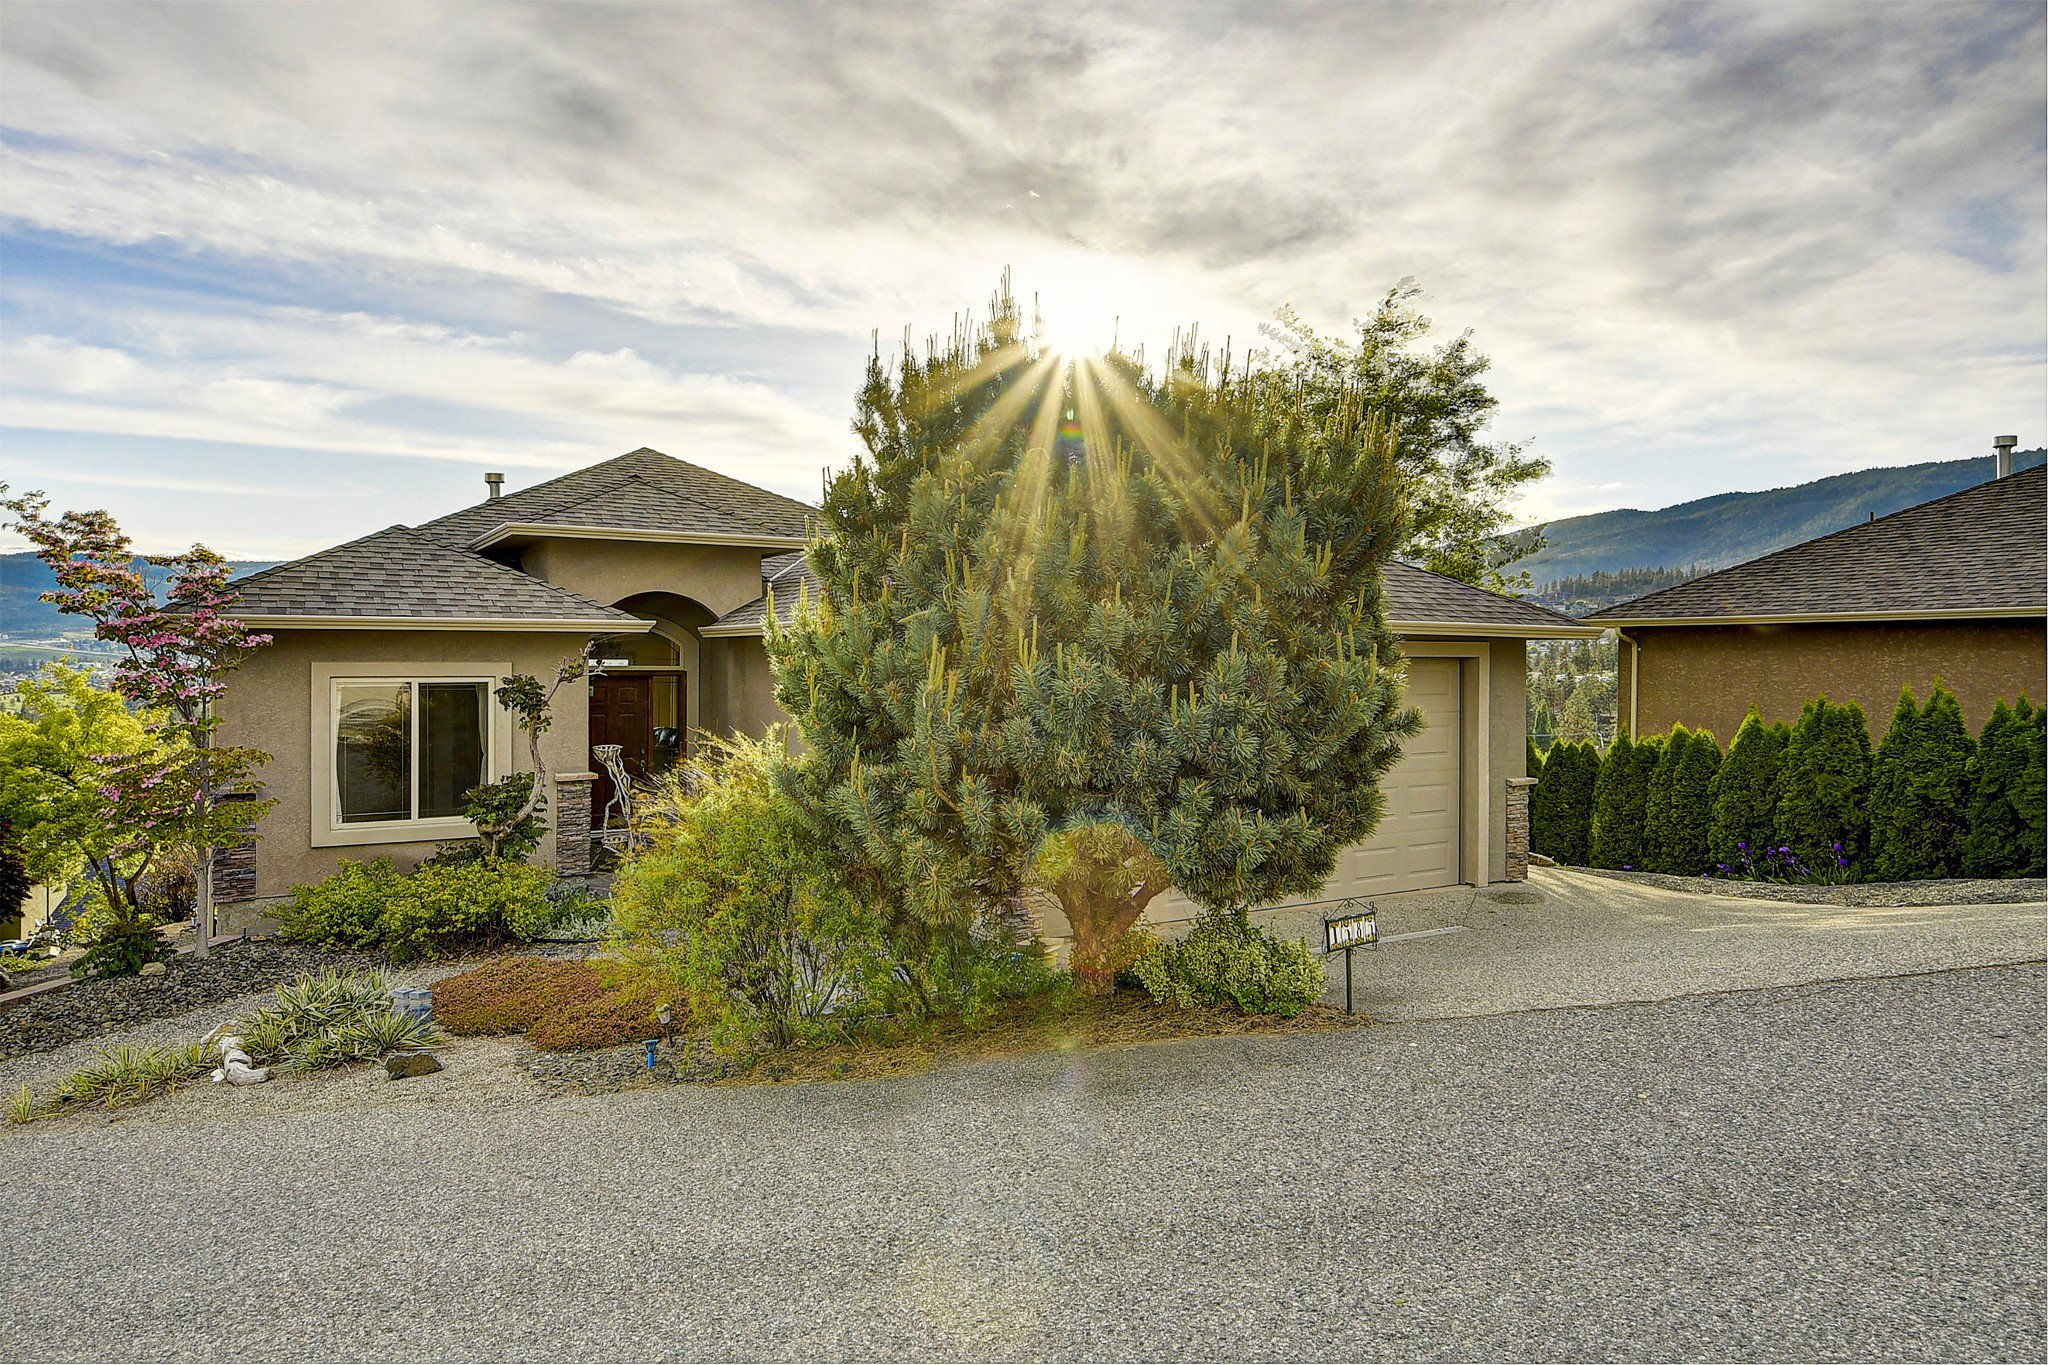 Main Photo: 1585 Merlot Drive, in West Kelowna: House for sale : MLS®# 10209520